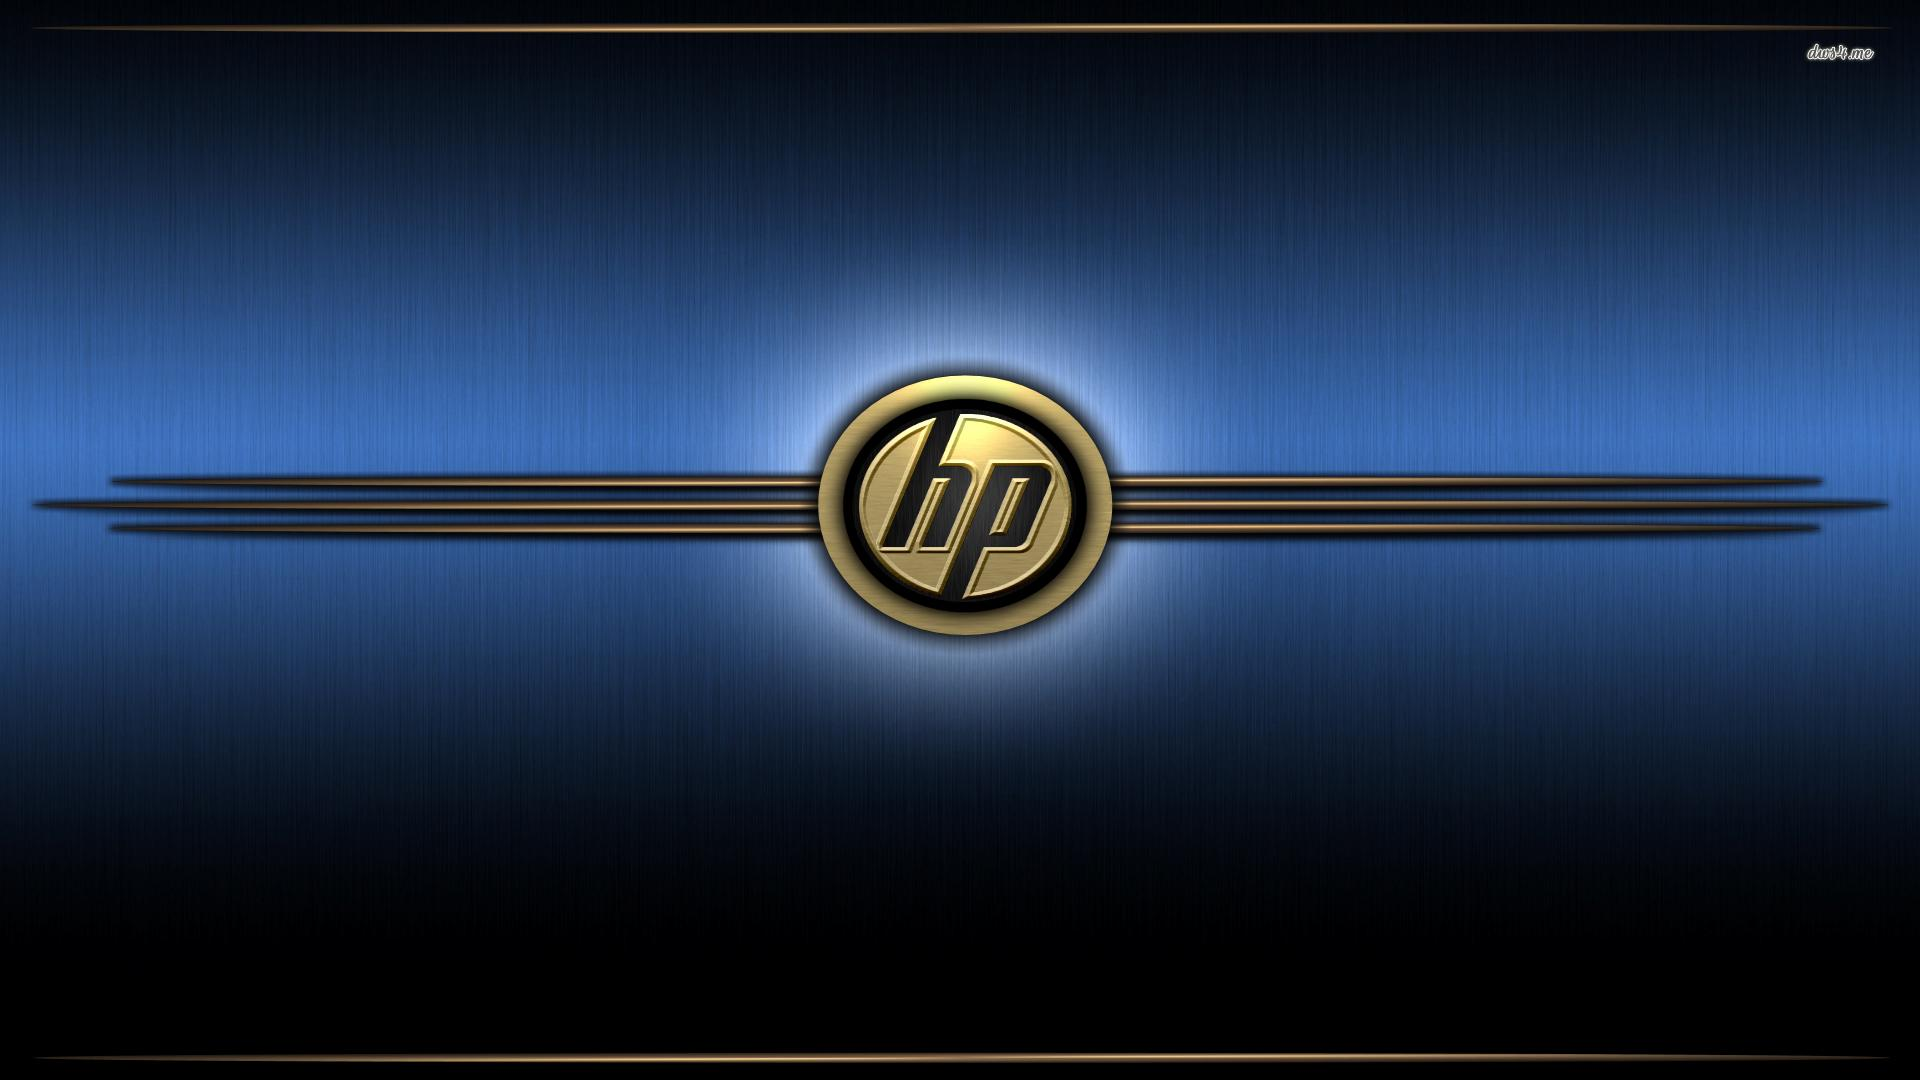 HP Logo Wallpapers - Wallpaper Cave